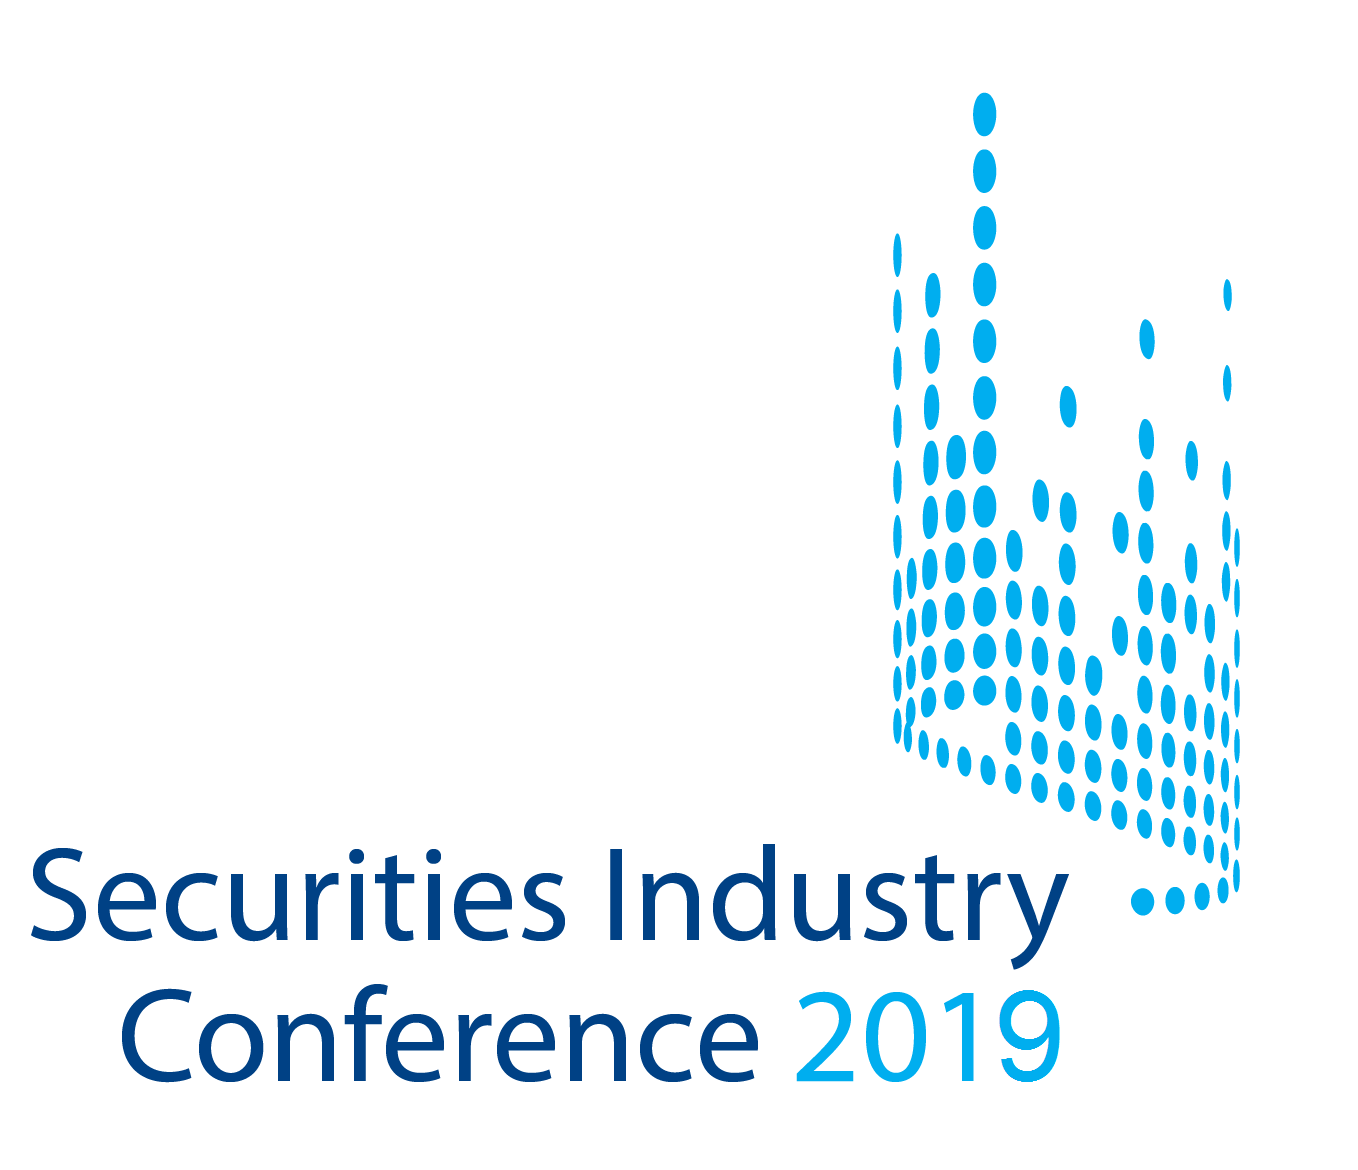 Securities Industry Conference 2019 -Forthcoming Events